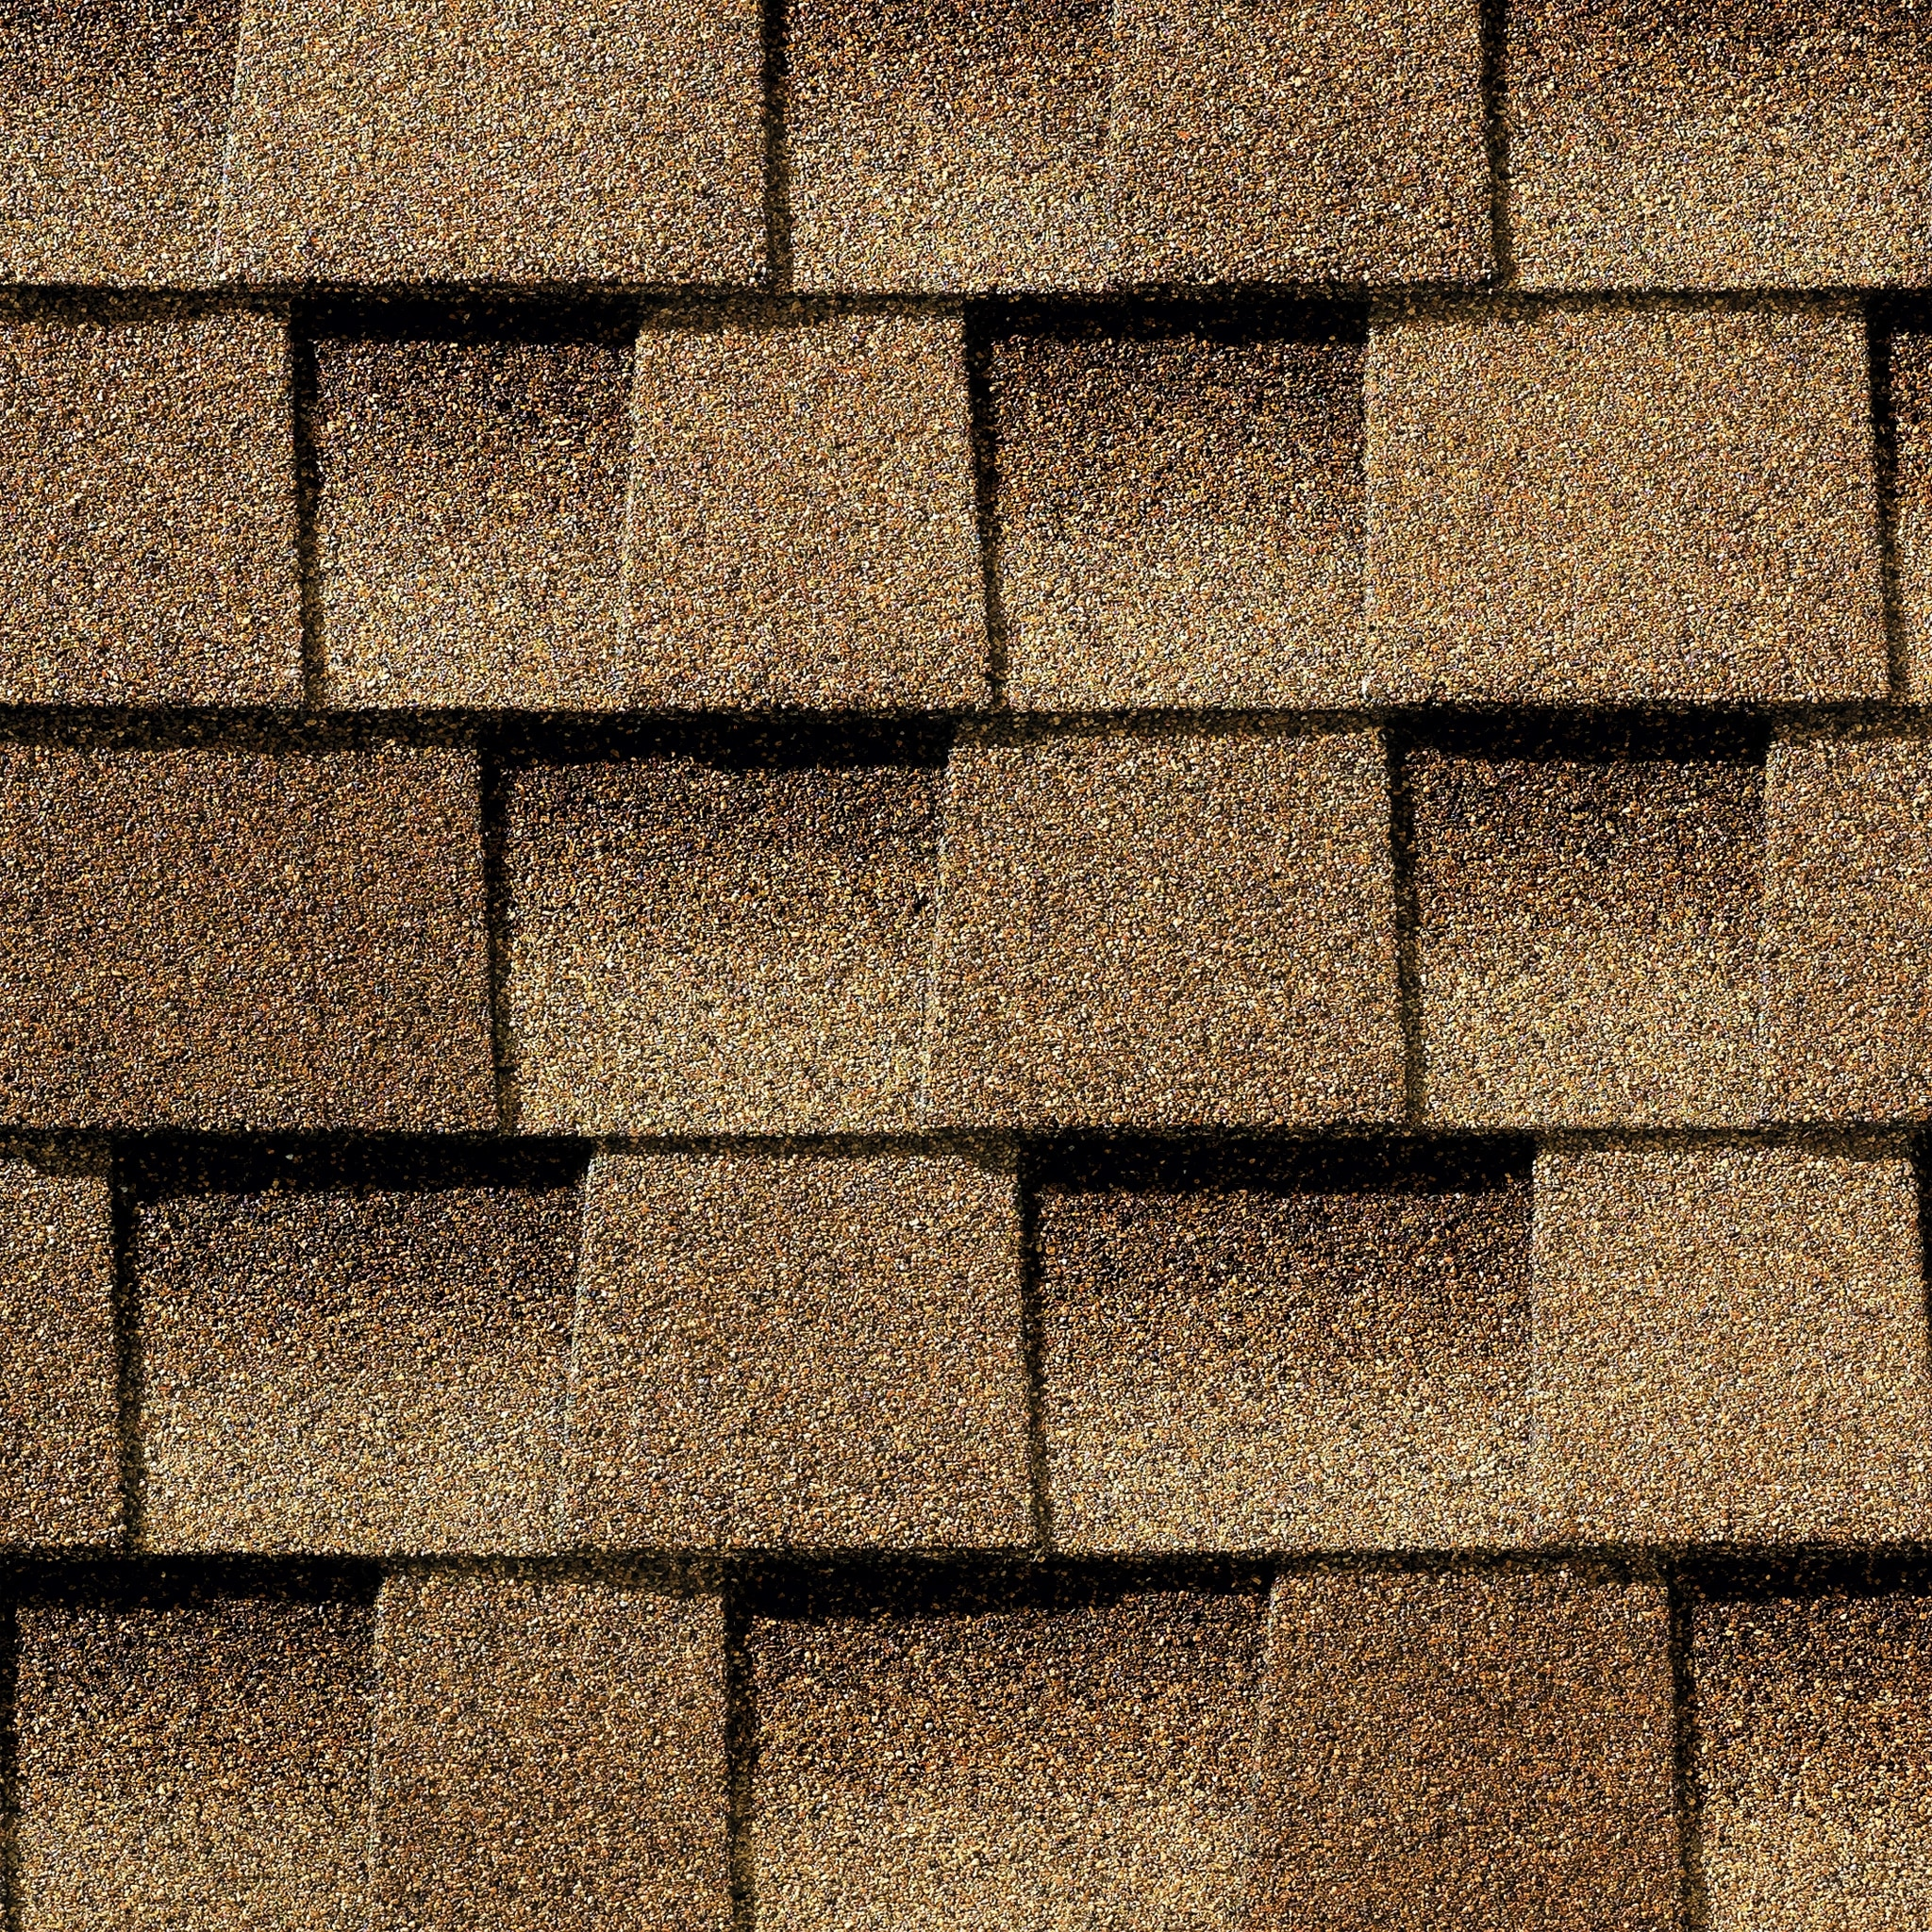 Close up photo of GAF's Timberline Ultra HD Shakewood shingle swatch